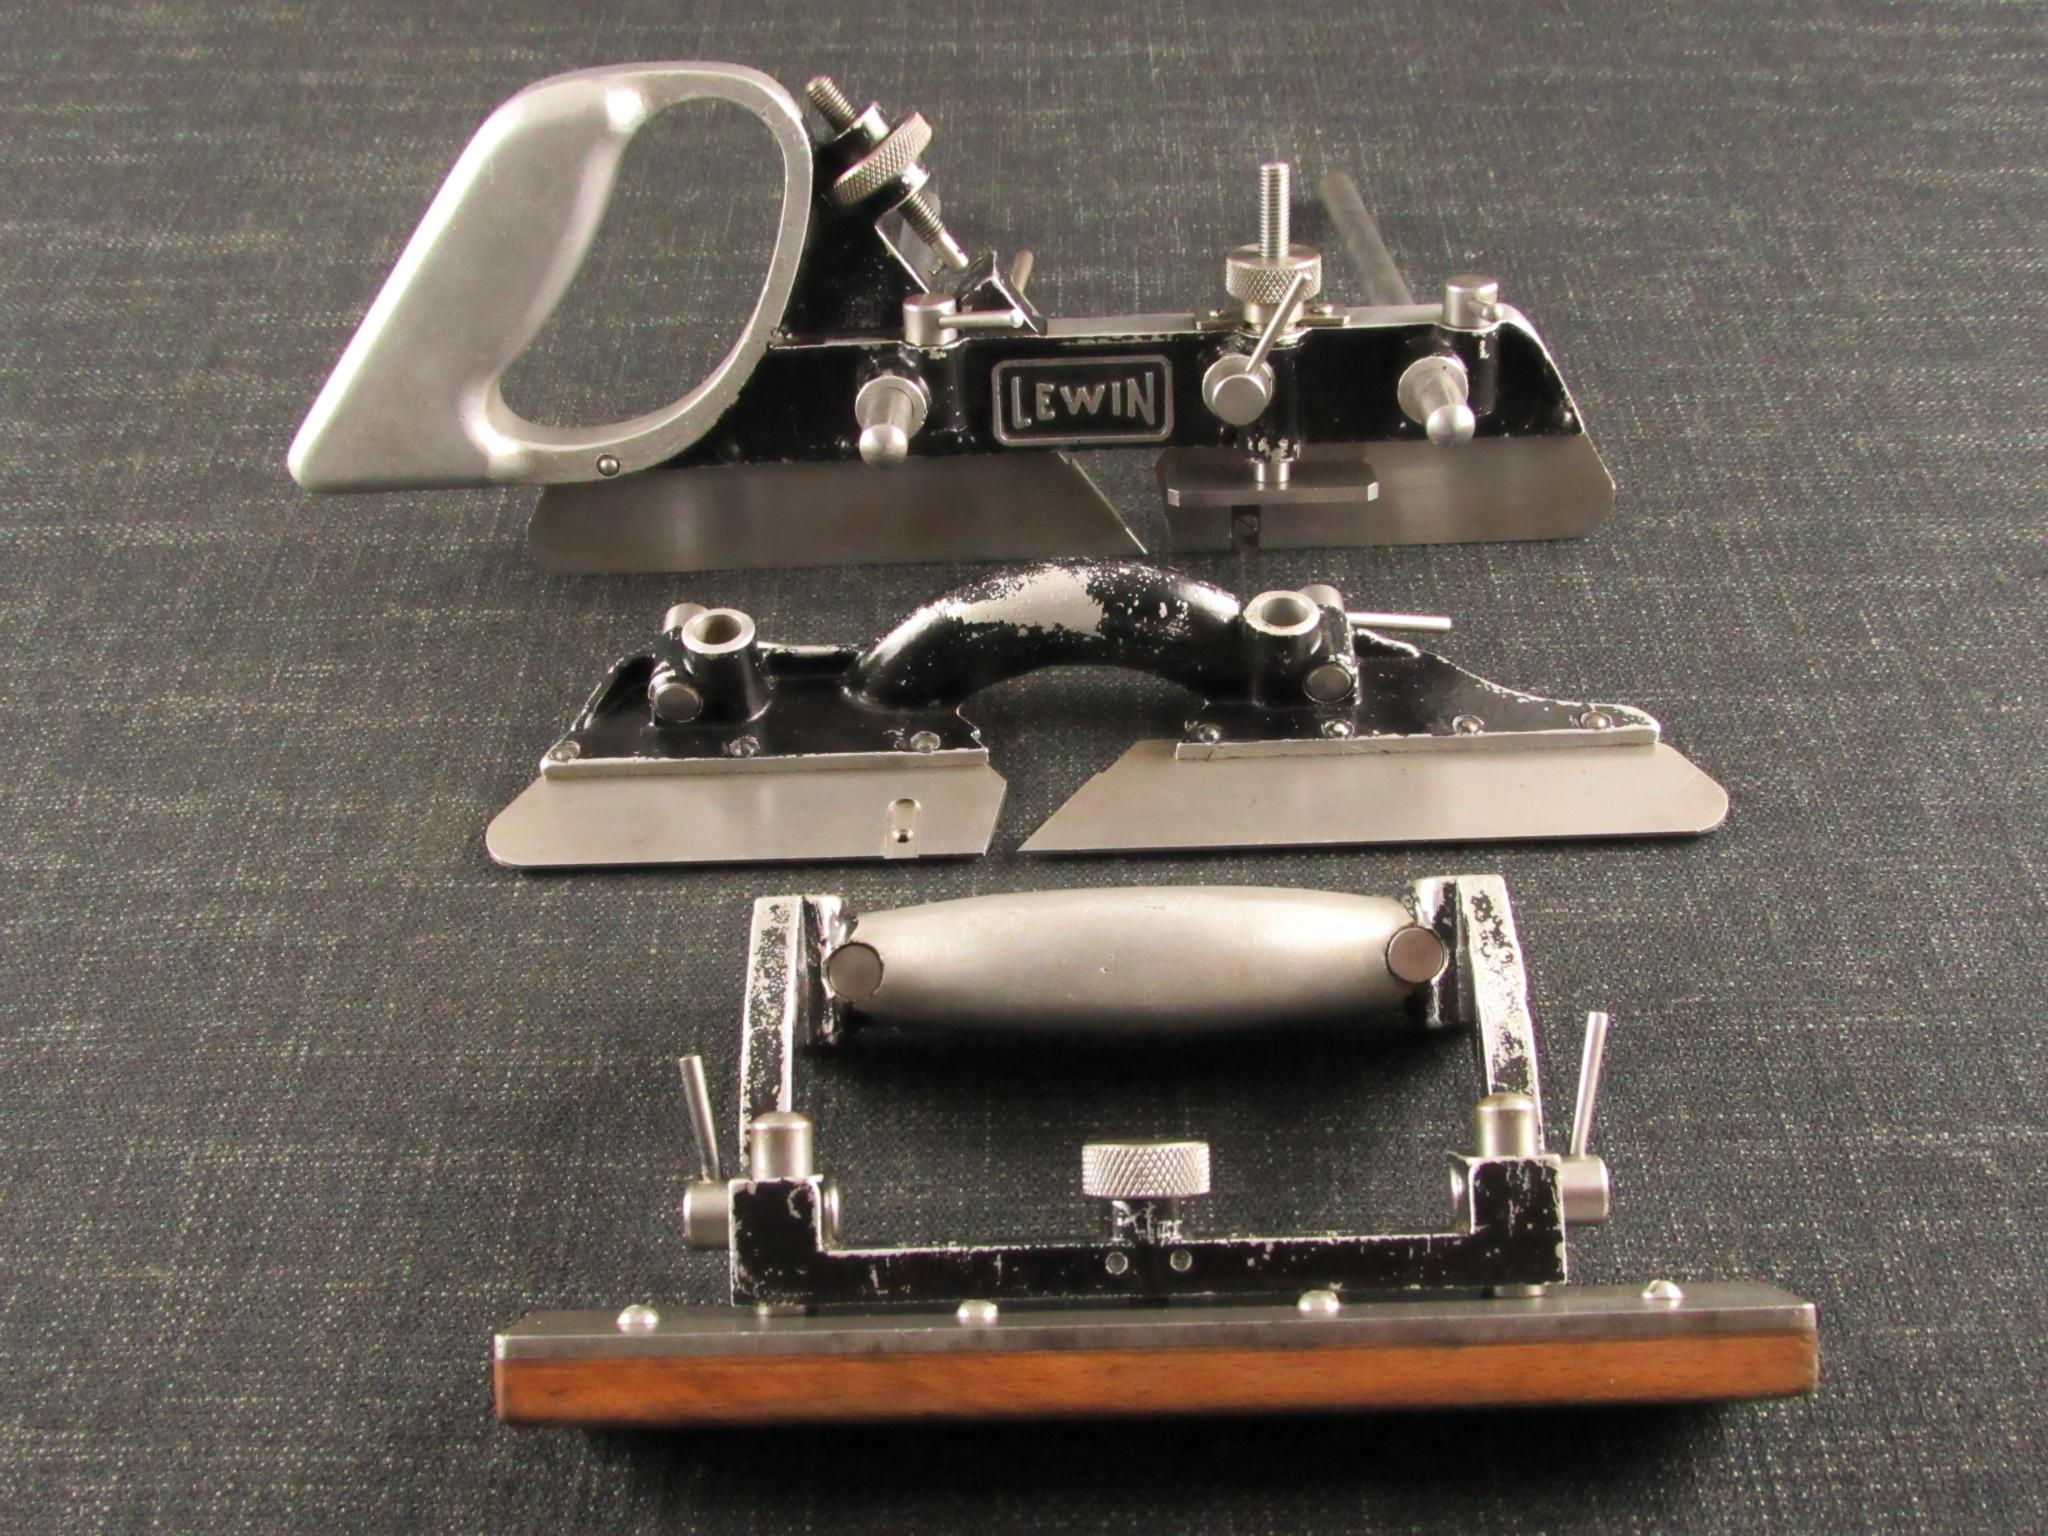 The LEWIN Universal Plane